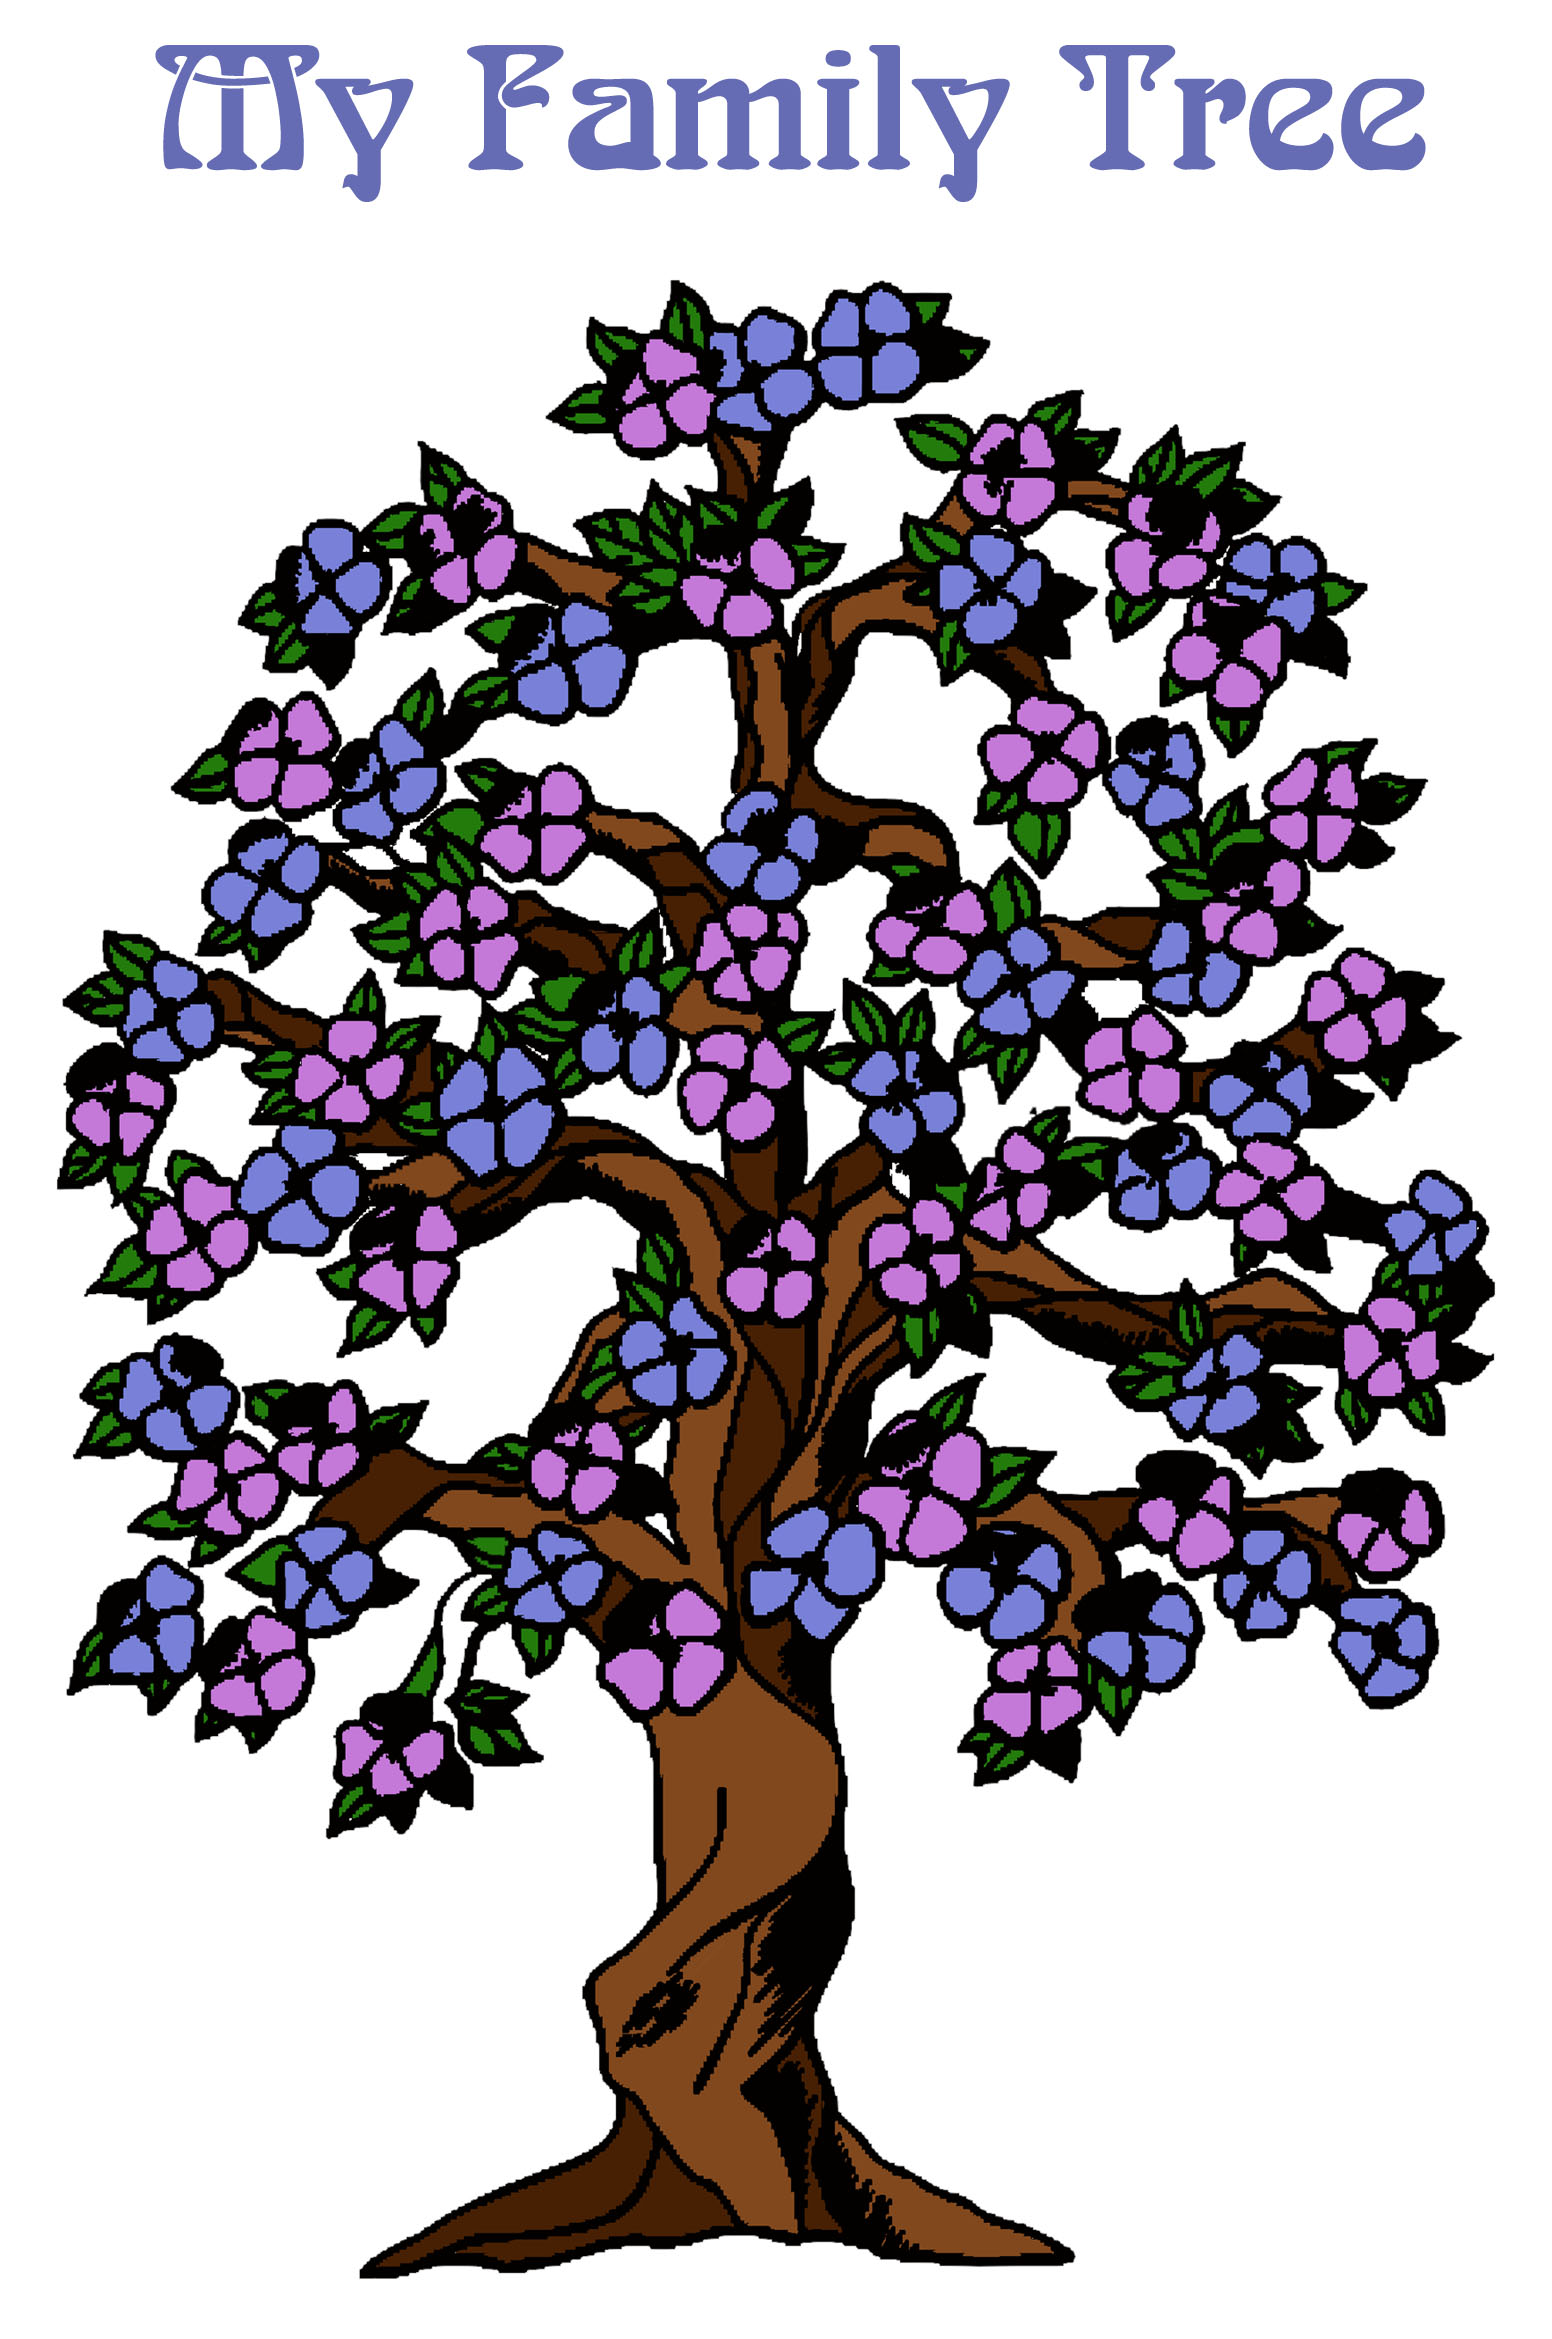 Family tree design for kids with colorful flowers.